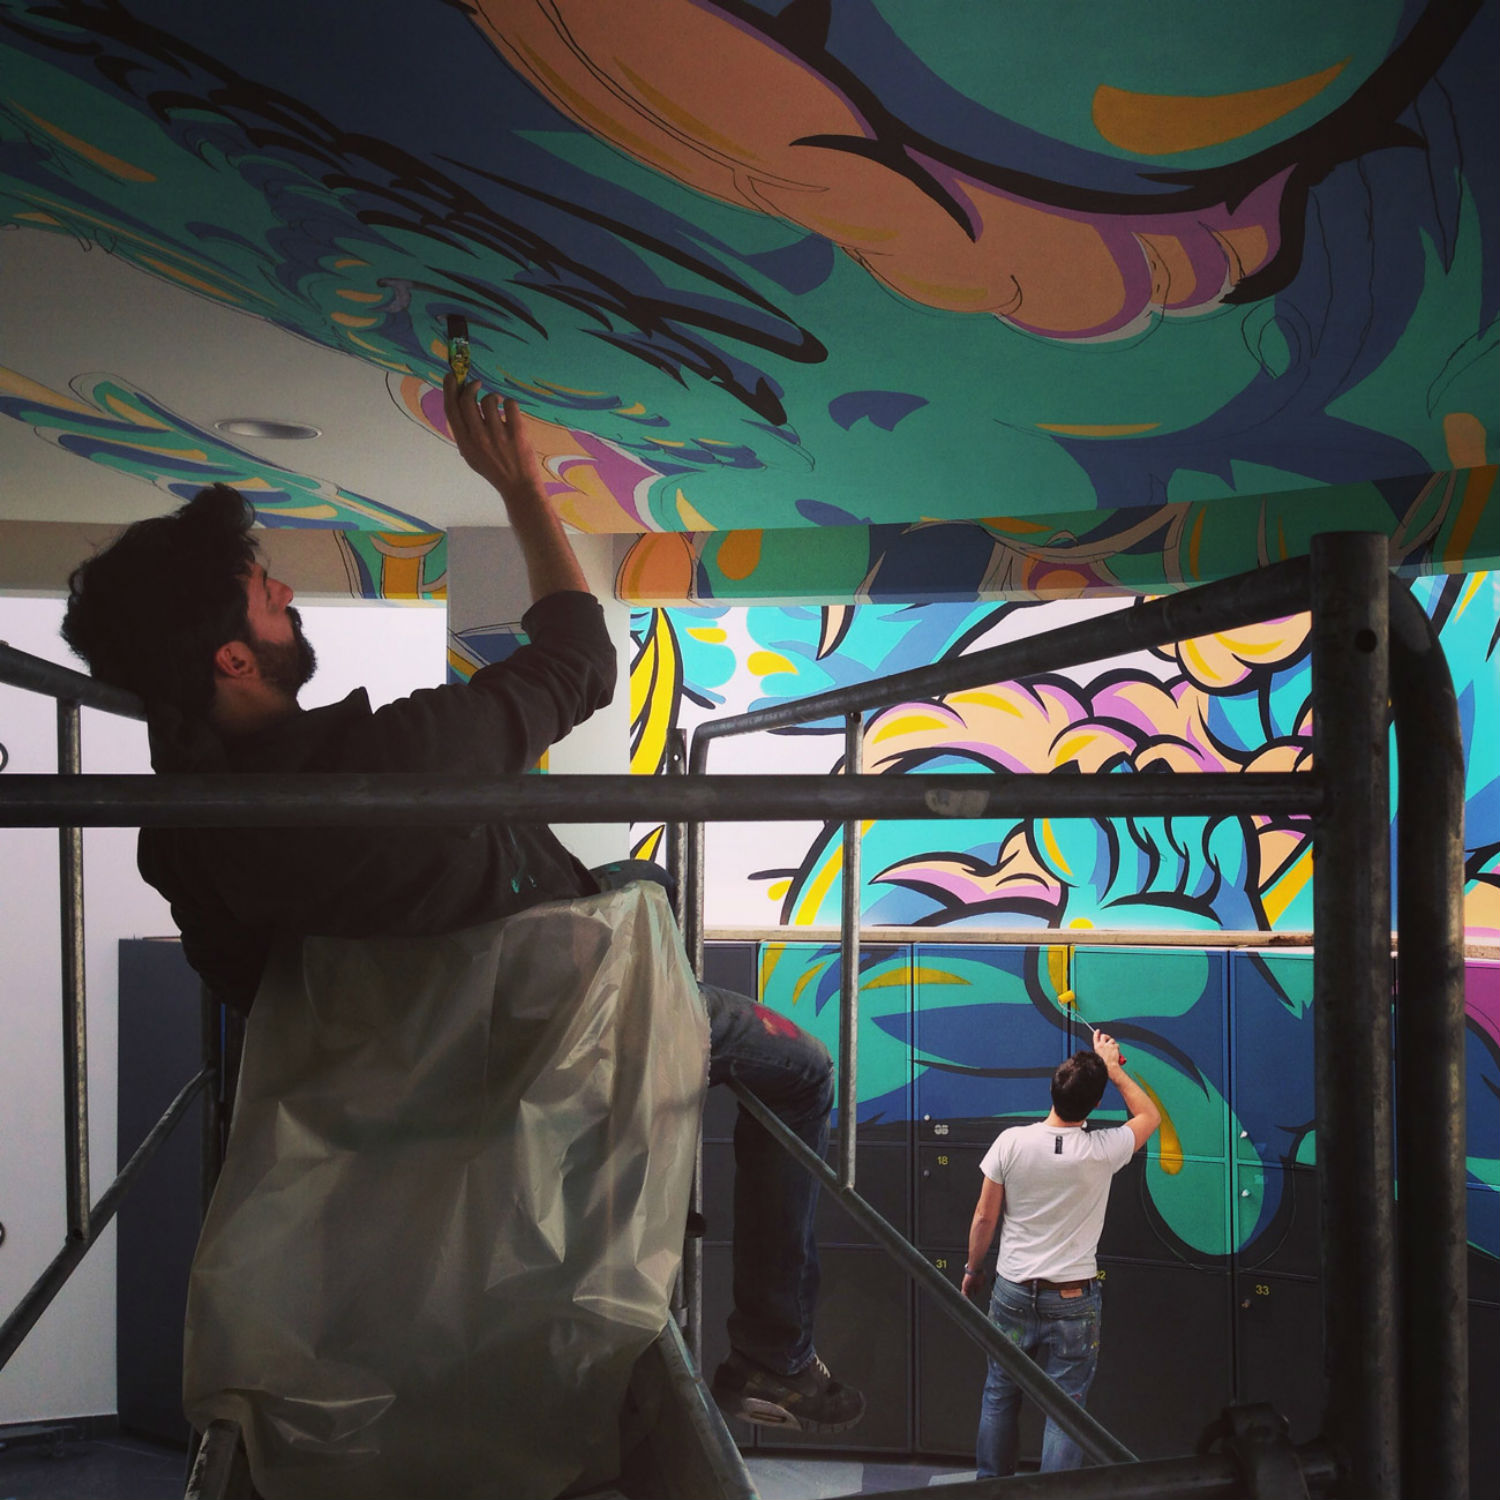 truly design anamorphic graffiti painting zeus god colour space